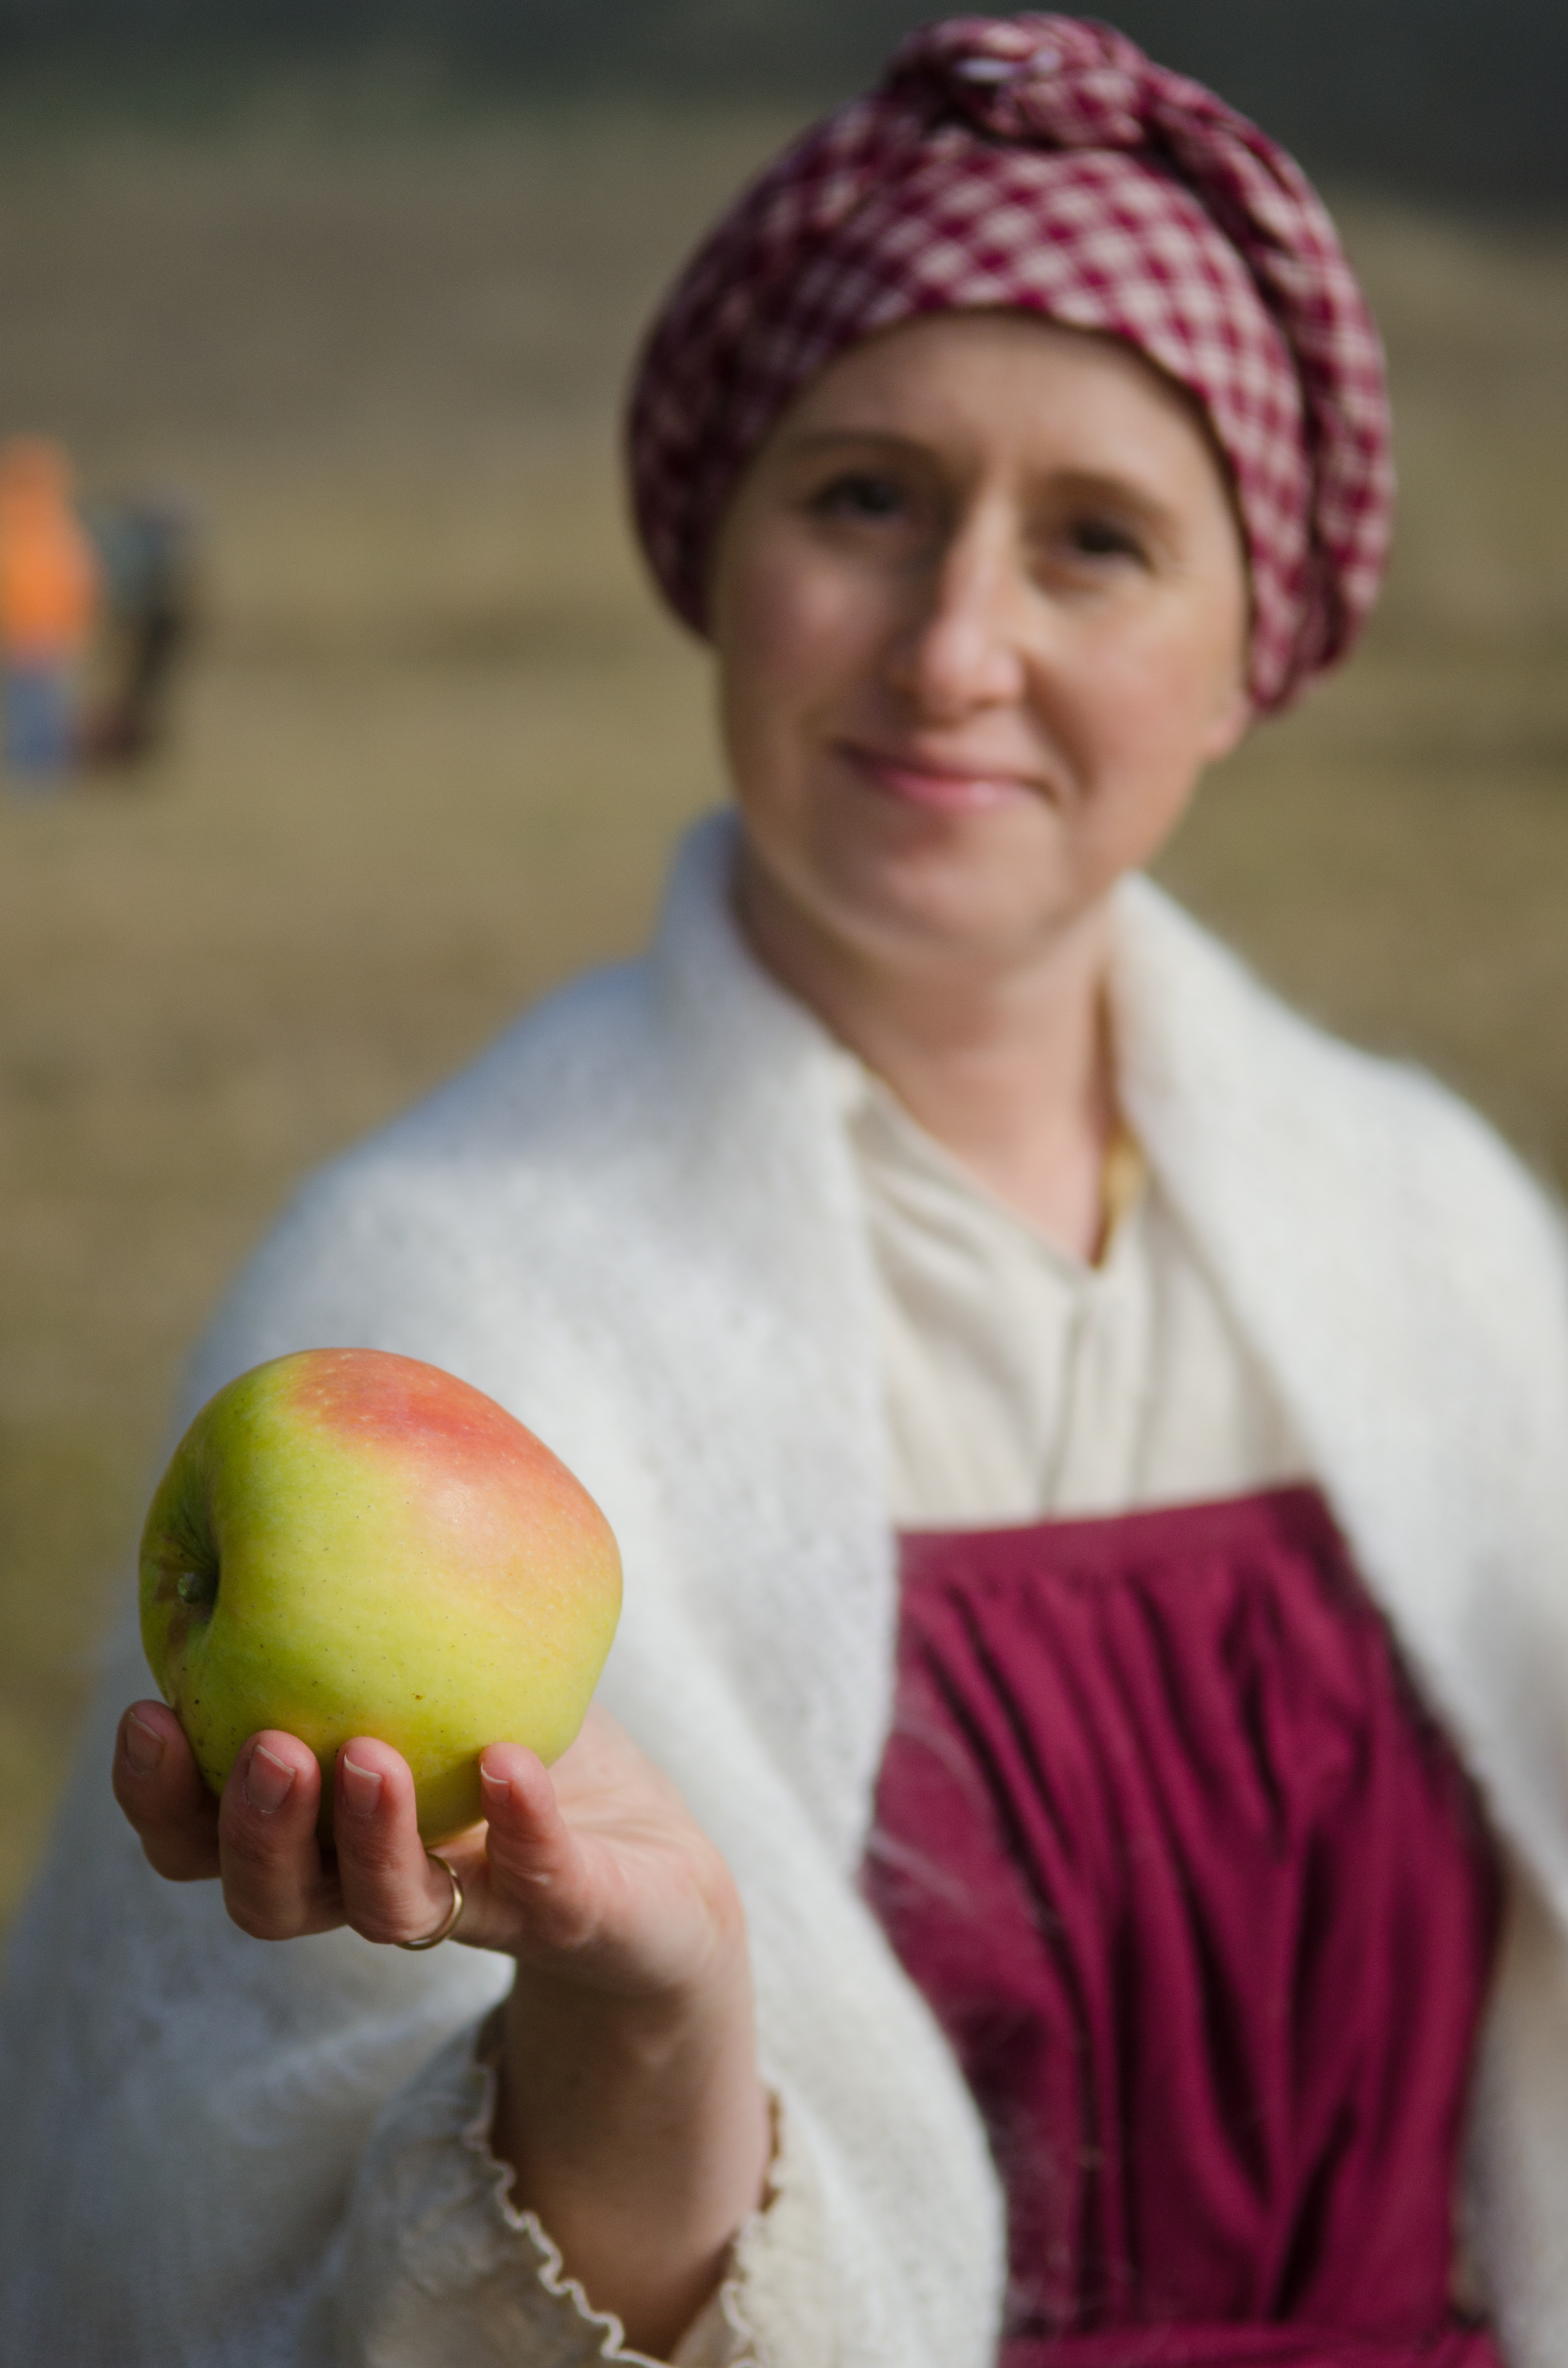 Woman Offering an Heirloom Apple Fort Ross Orchard